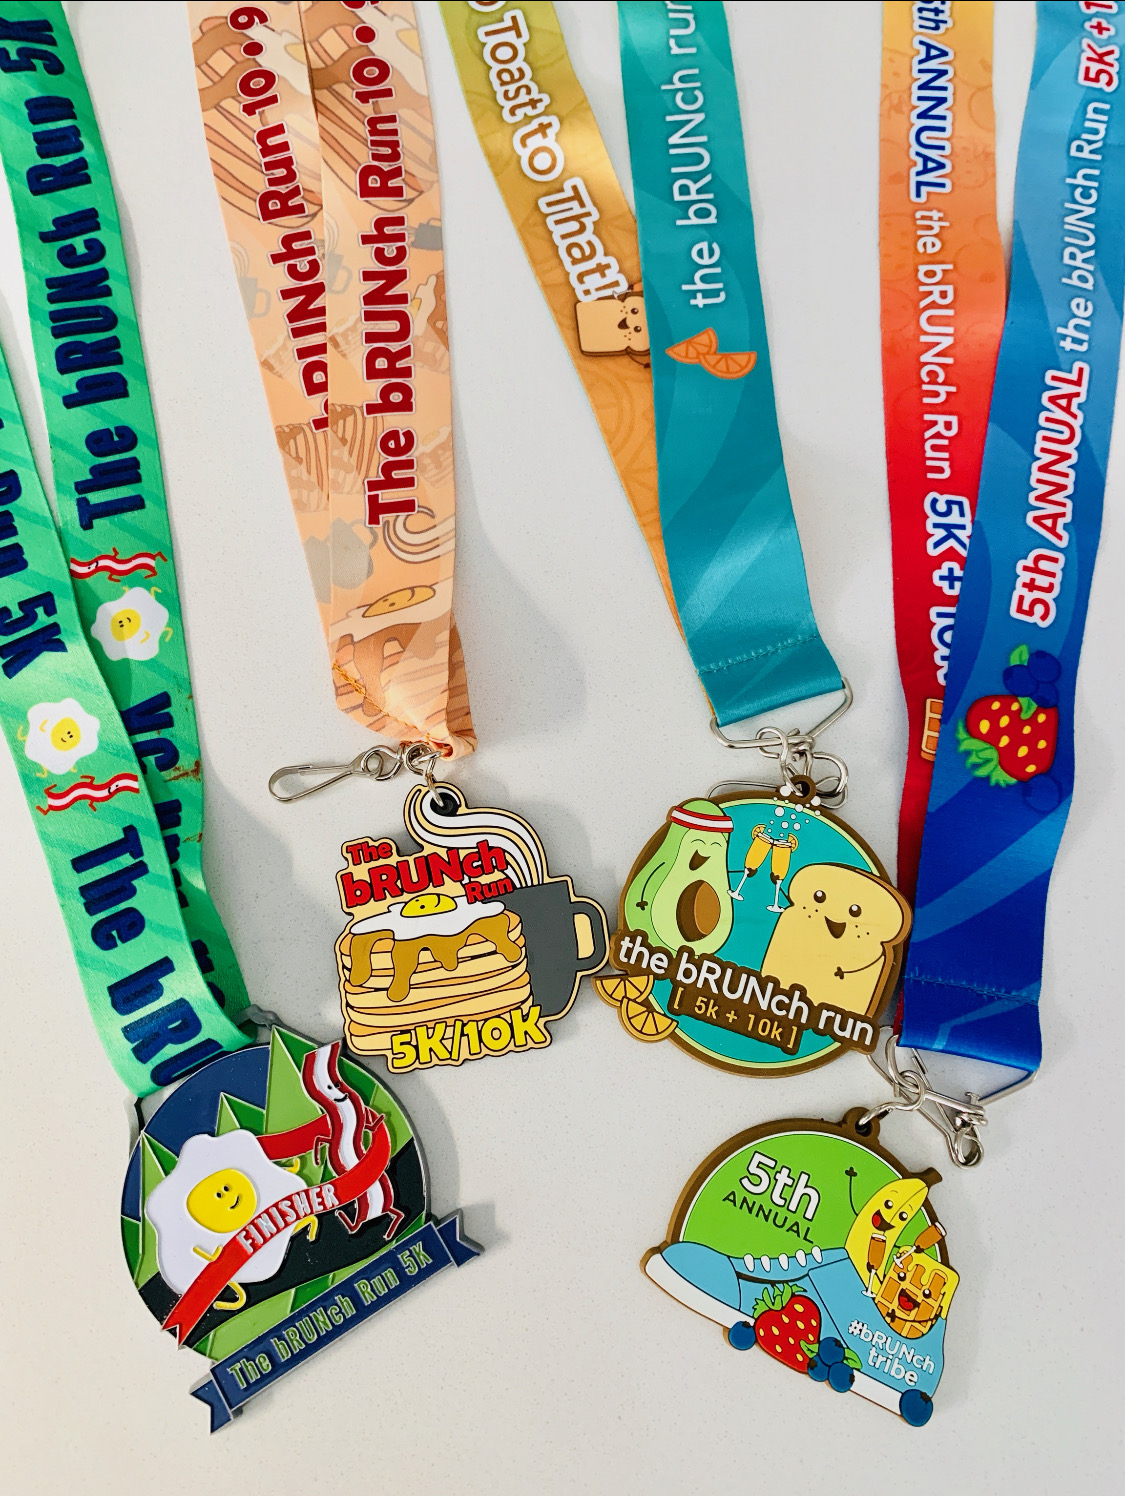 Previous Race Medals